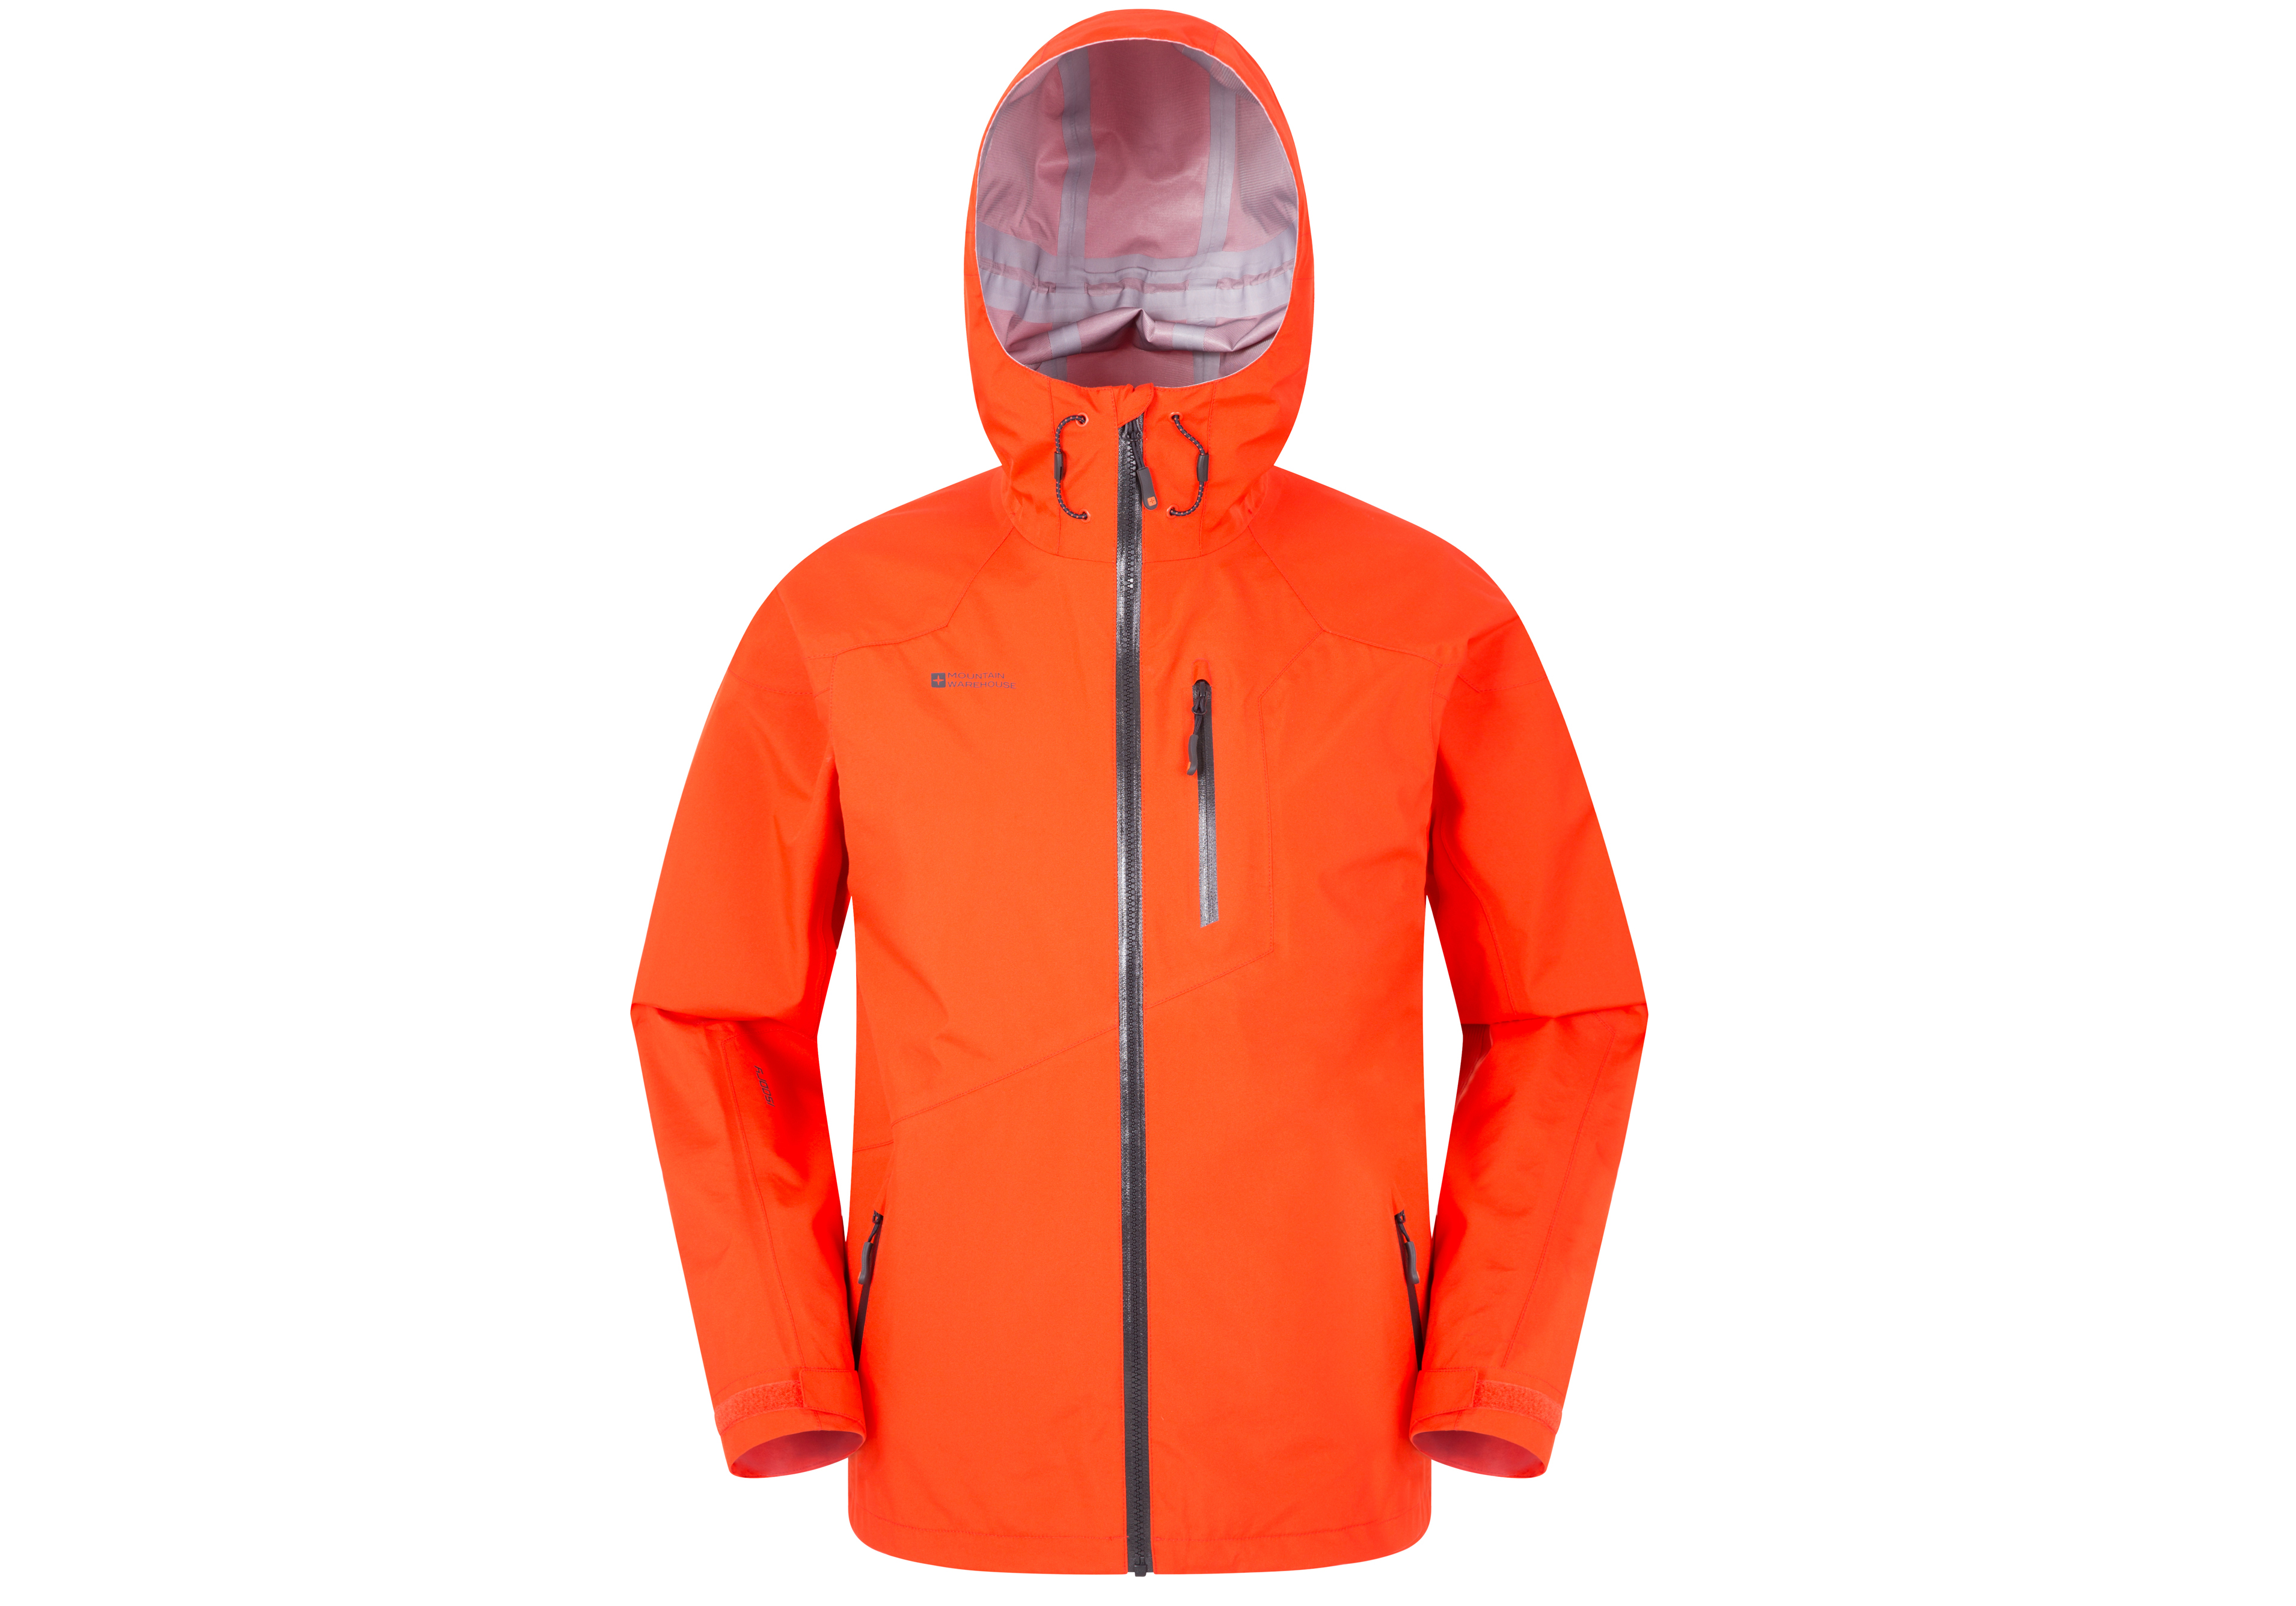 A technical jacket from Mountain Warehouse